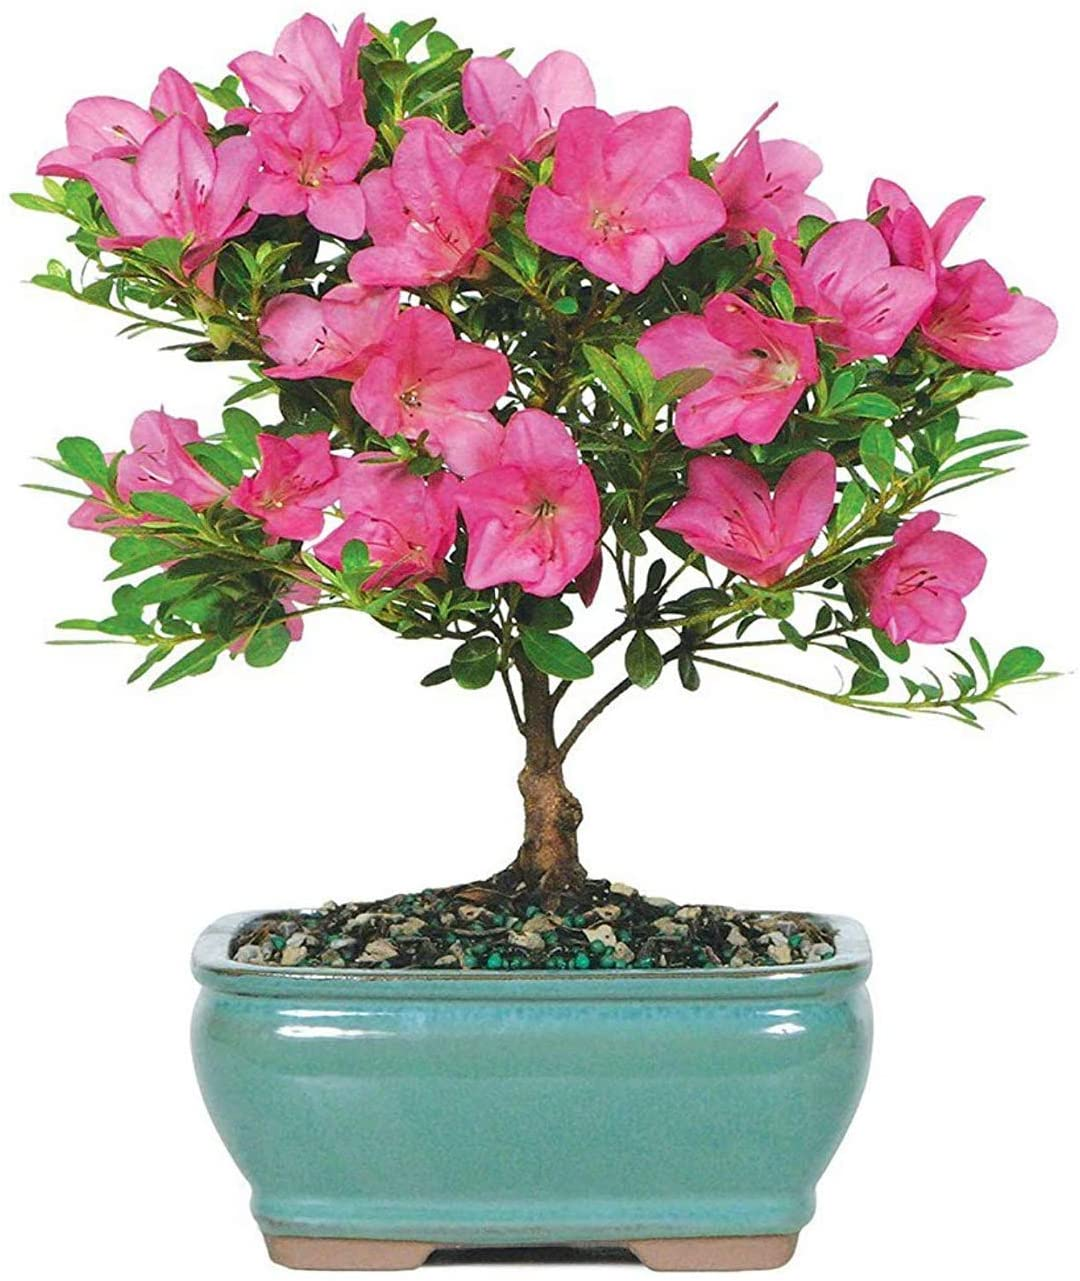 mothers-day-gifts-from-son-tree